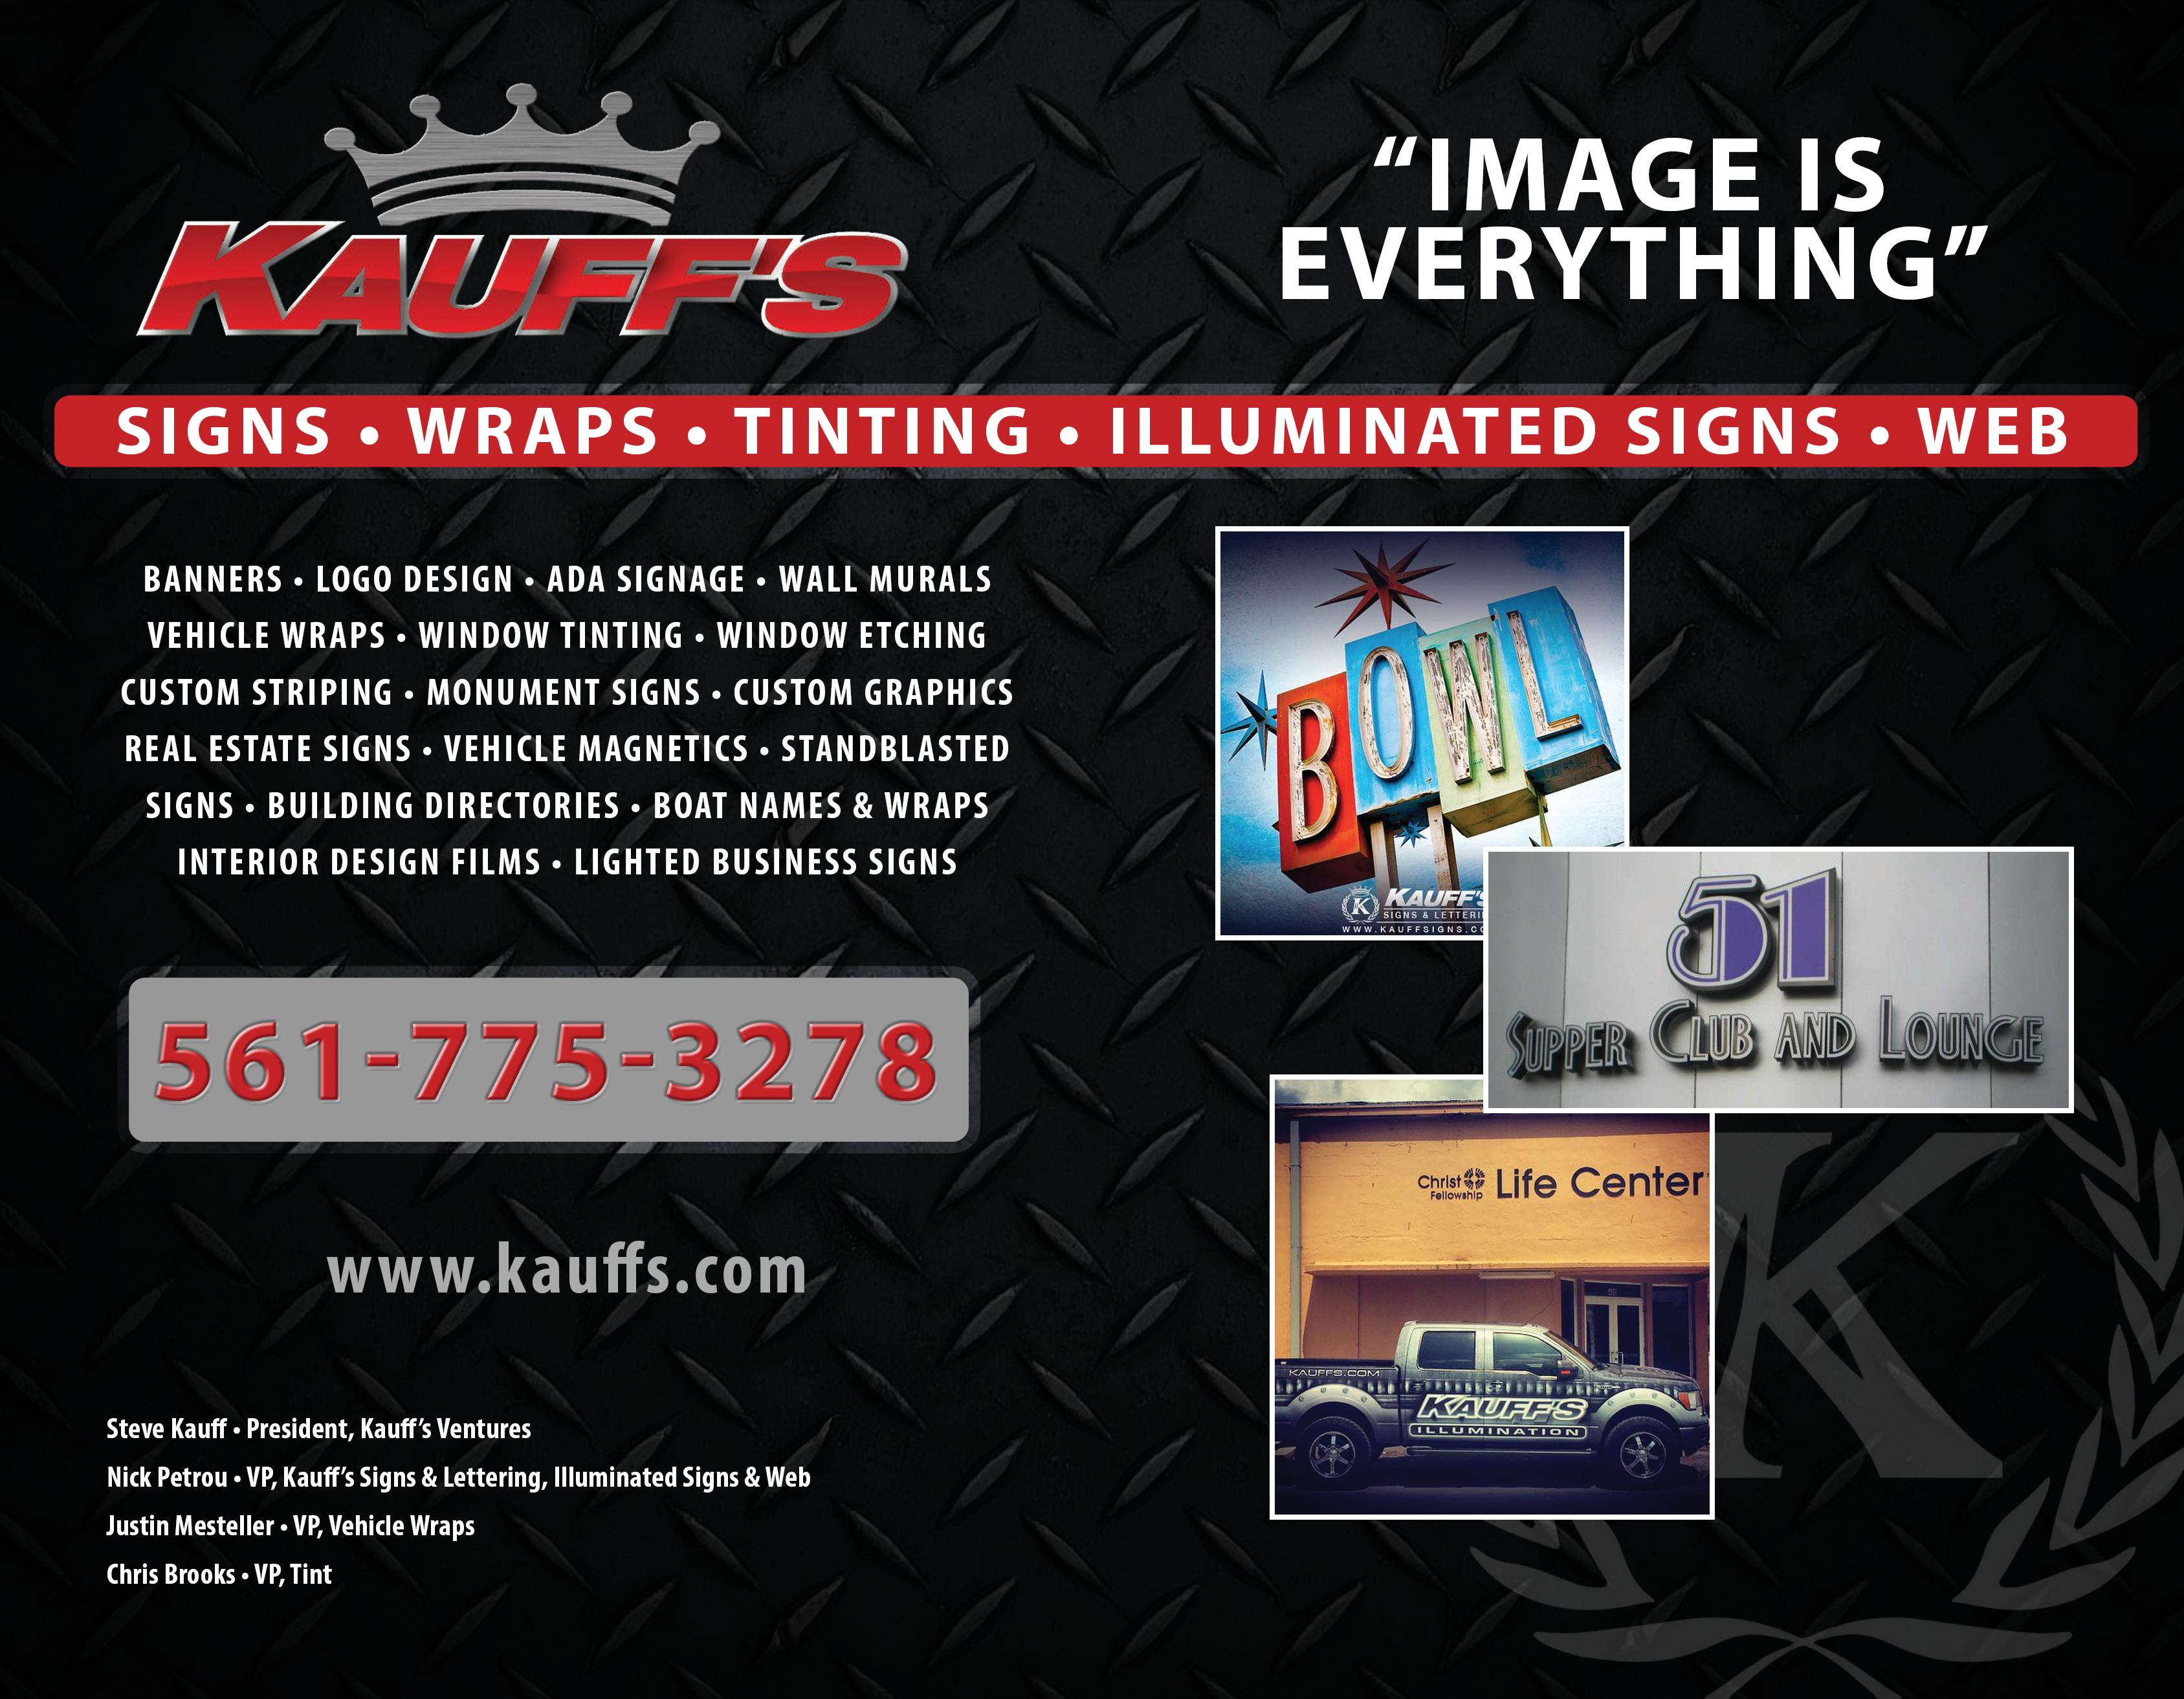 Kauff's Signs, Wraps, Tint & Web Design